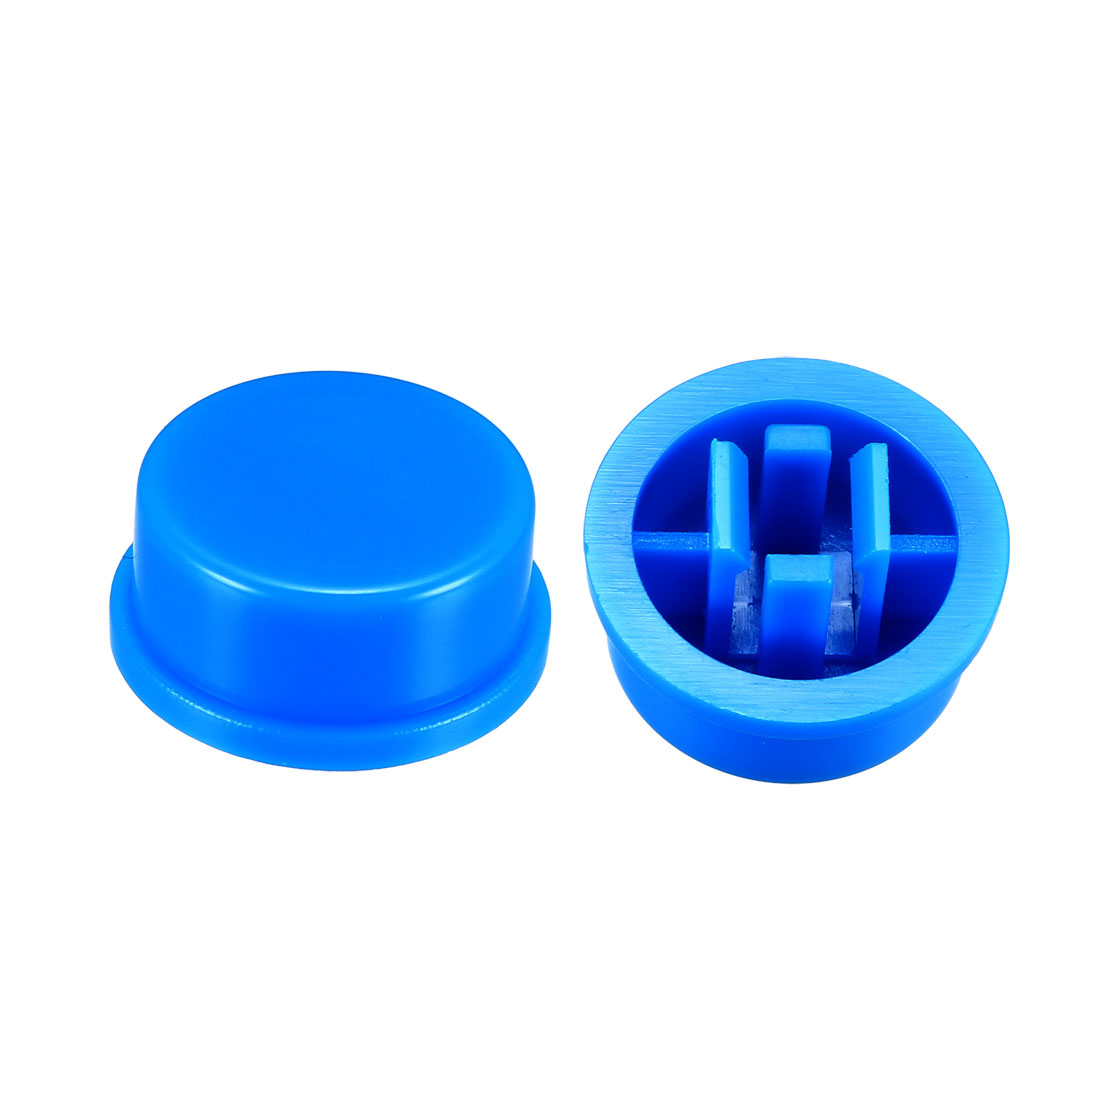 20Pcs 13x5.6mm Pushbutton Switch Caps Cover Blue for 12x12x7.3mm Tact Switch